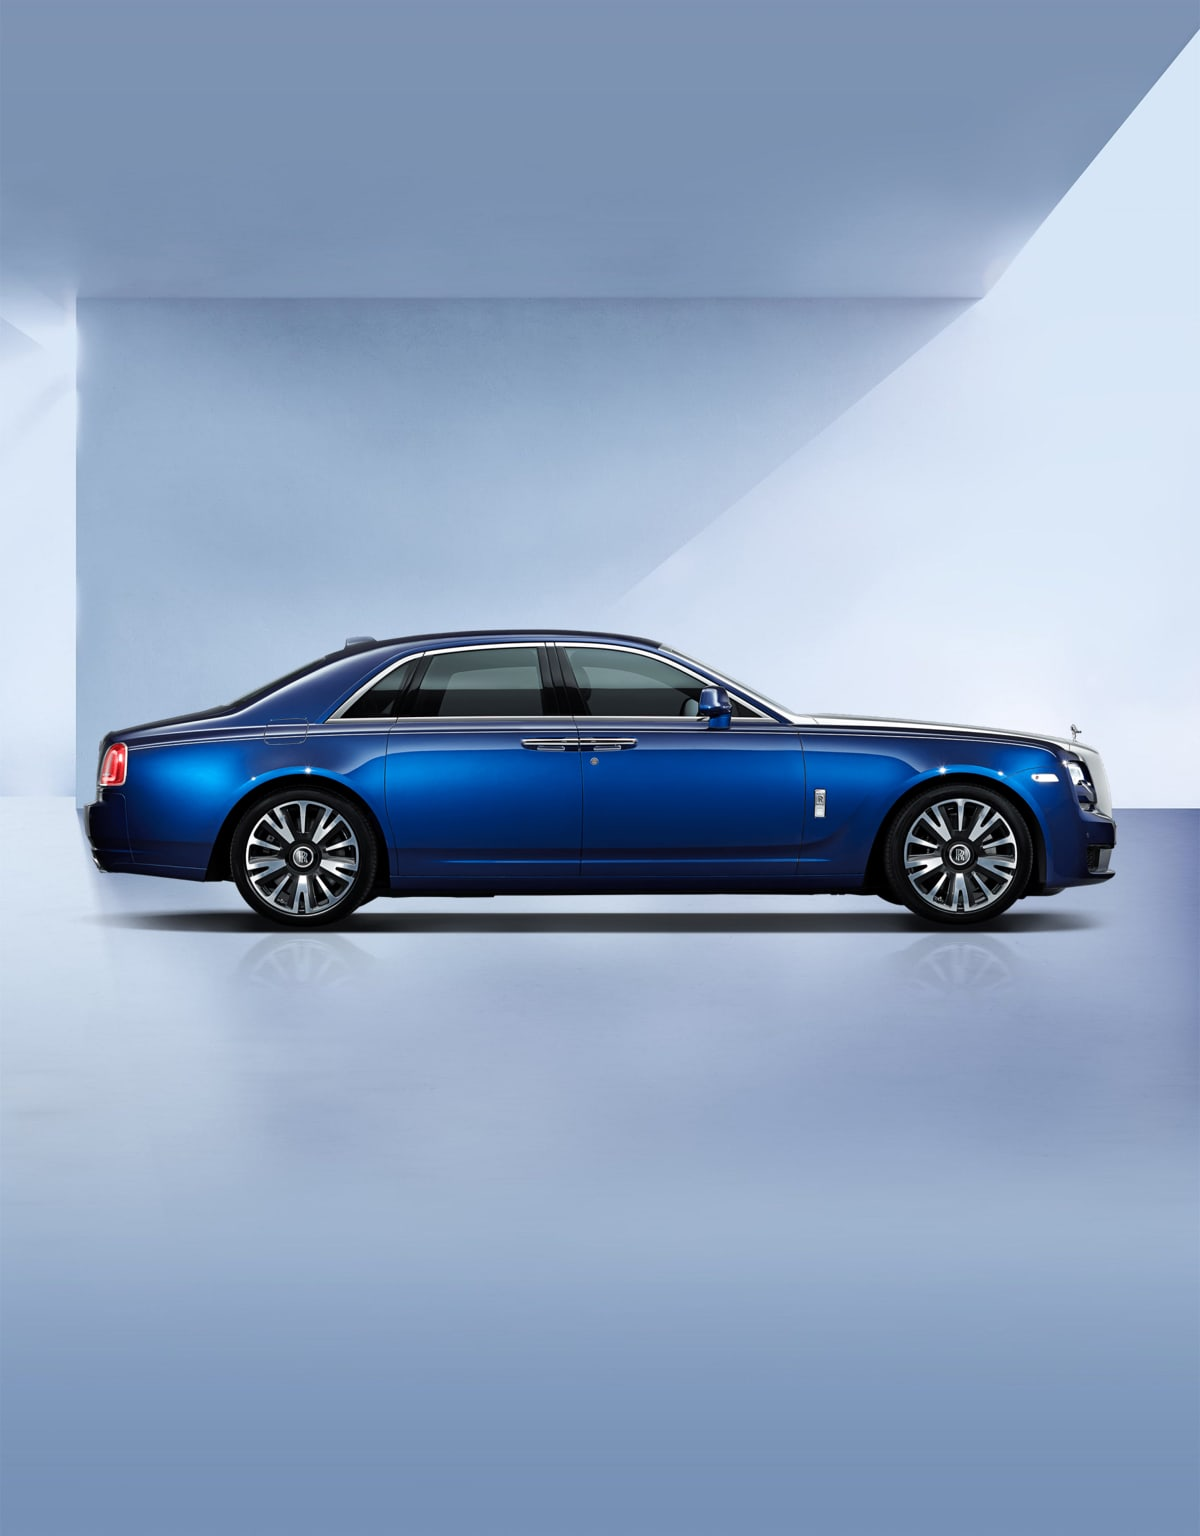 Side profile exterior of Rolls-Royce Ghost motor car.